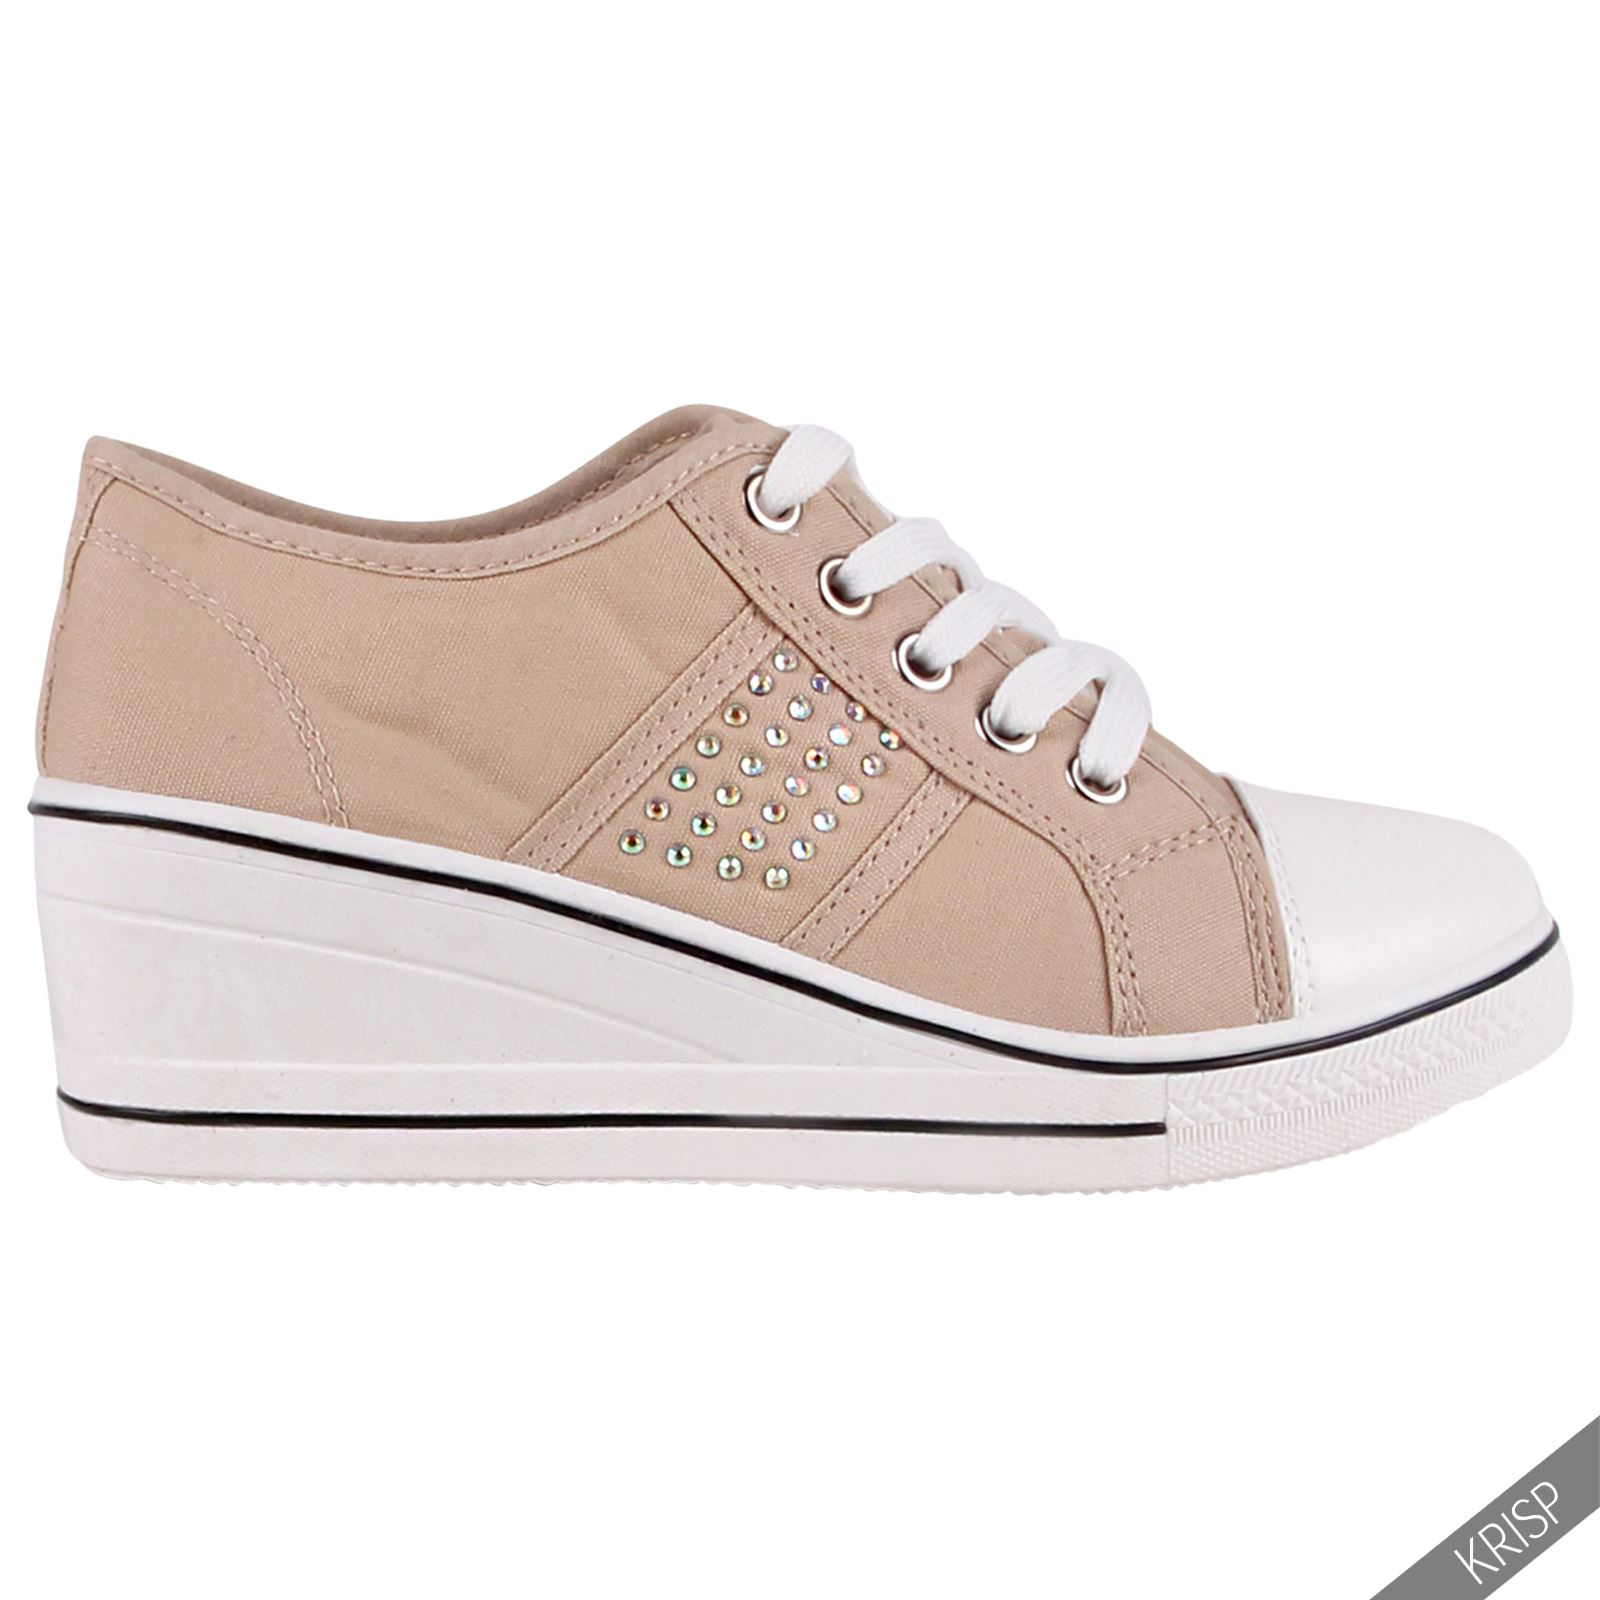 Ladies Low Wedge Slip On Canvas Shoes